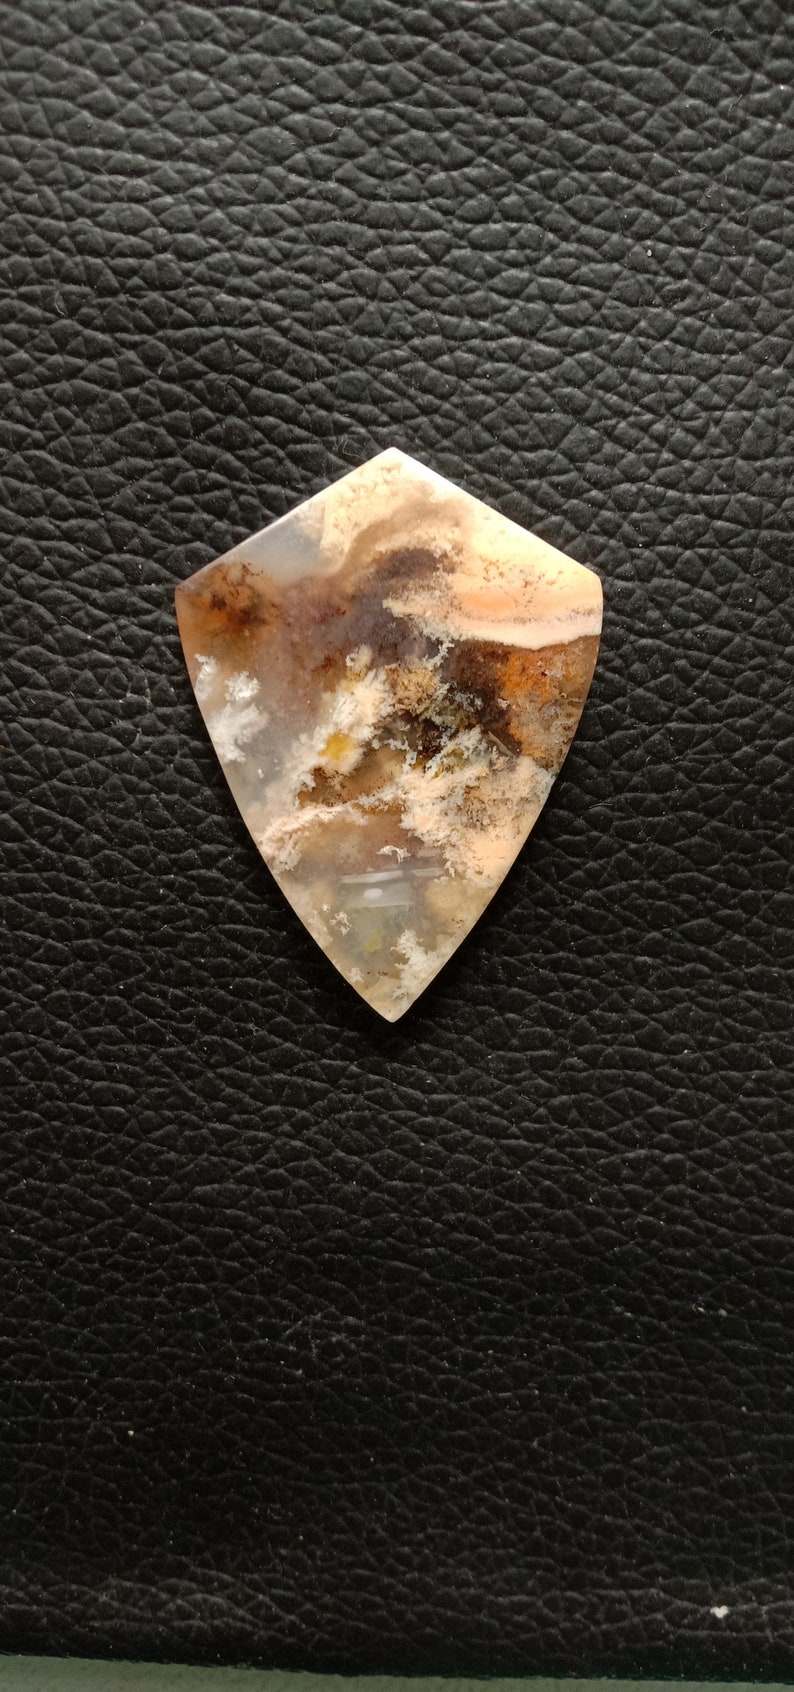 Rare Graveyard Point Plume Agate Cabochon Loos Gemstone Best For Jewellery!!